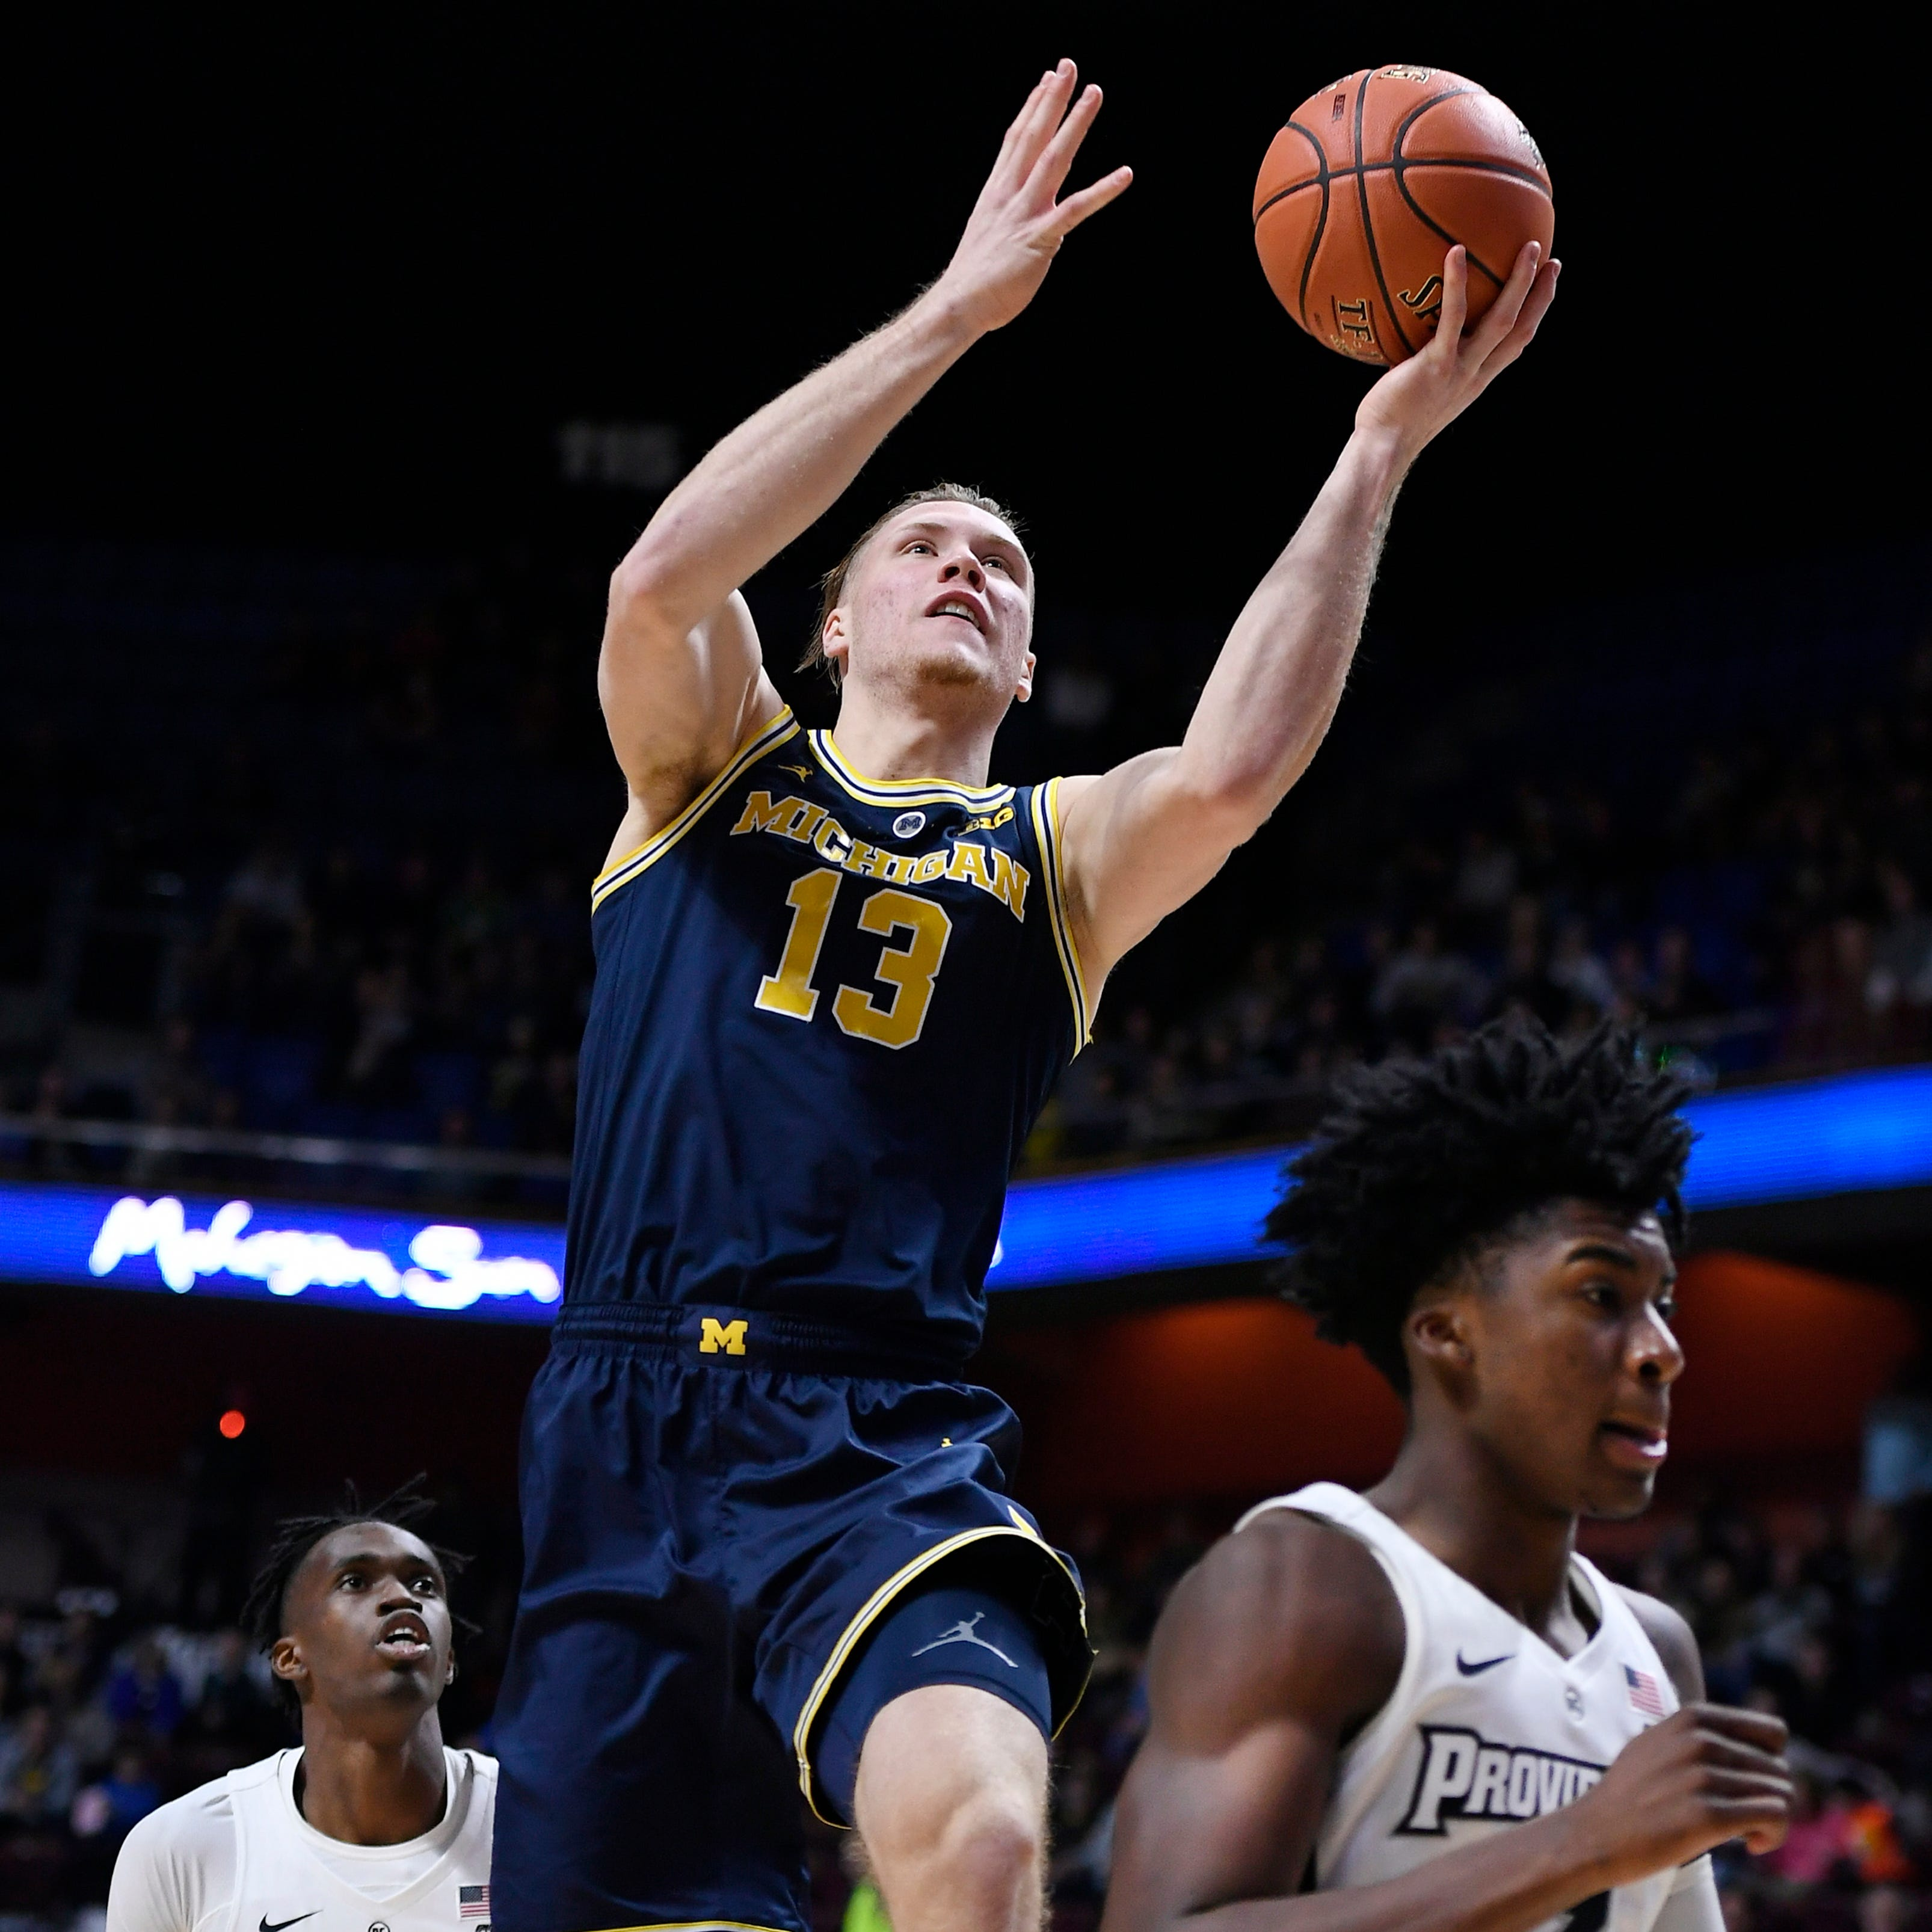 Defense stout again as Michigan smashes Providence